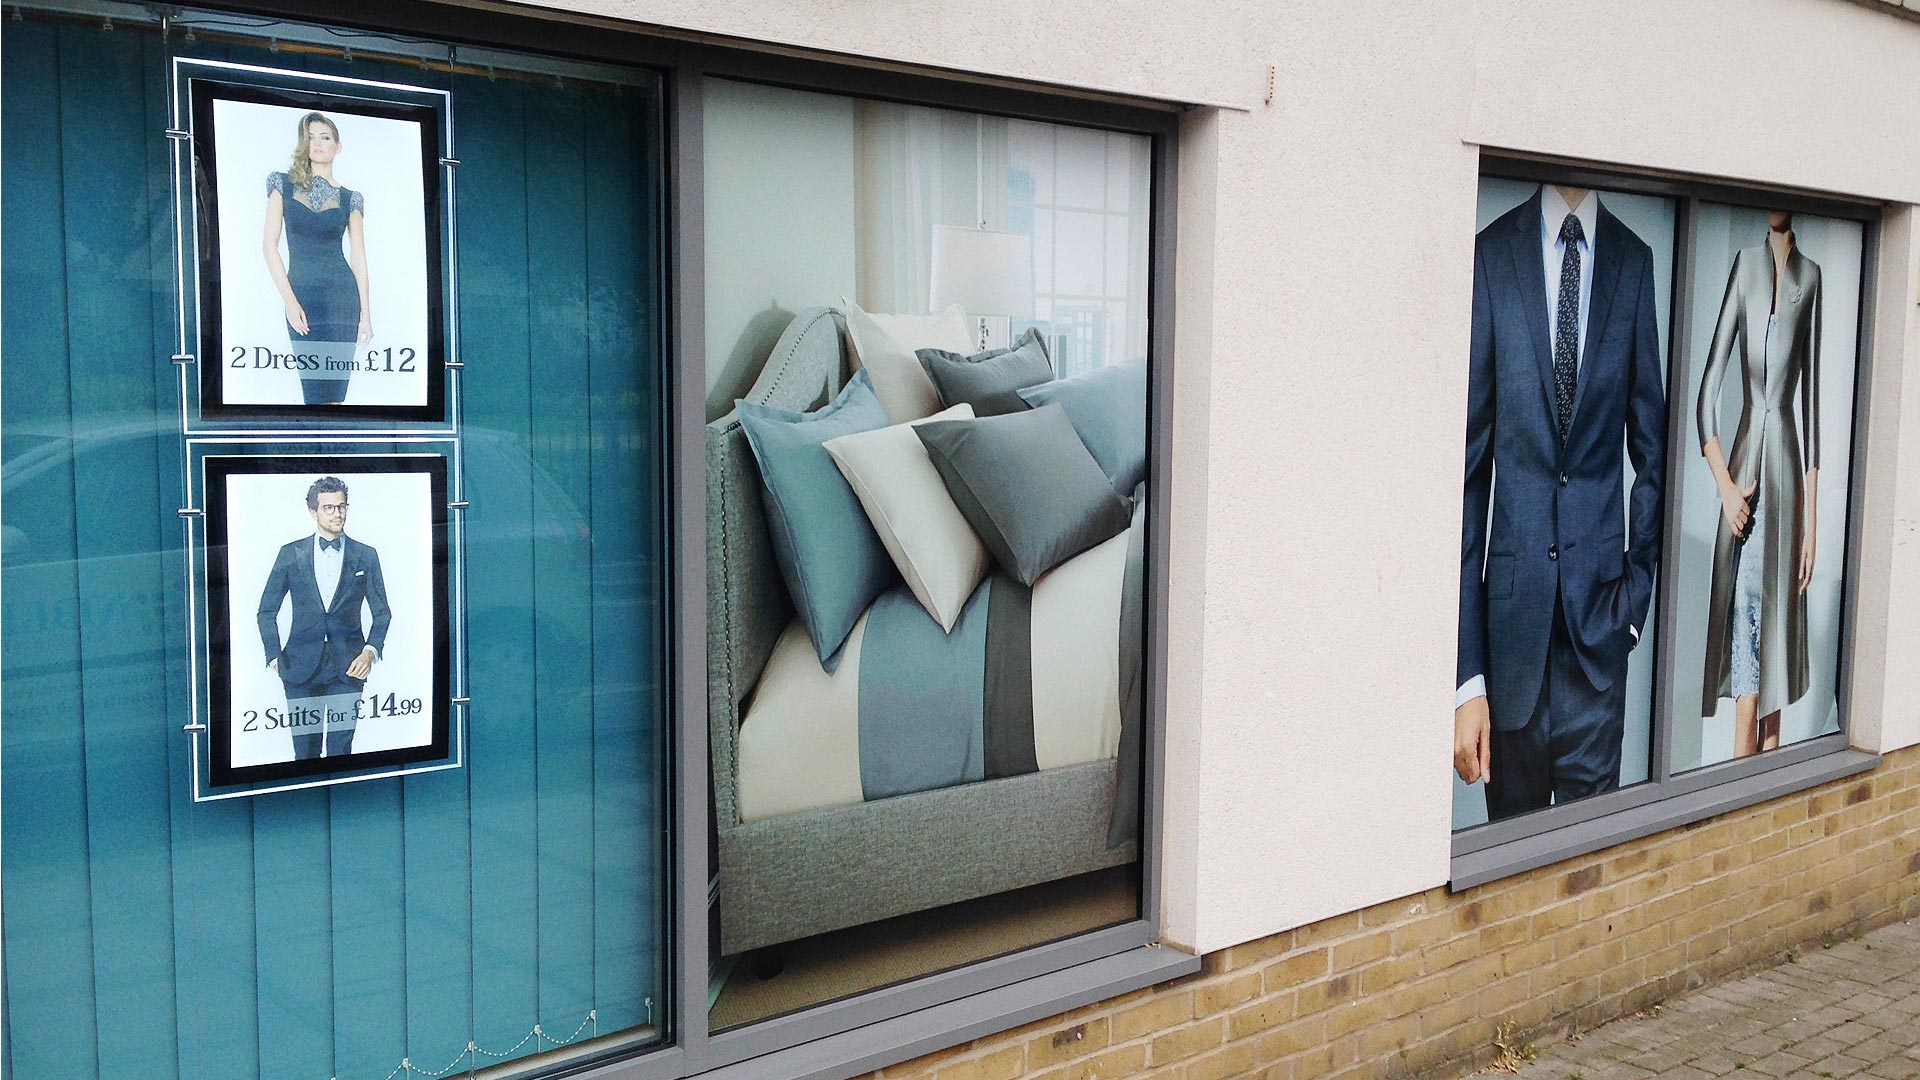 Nobble dry cleaners window graphics